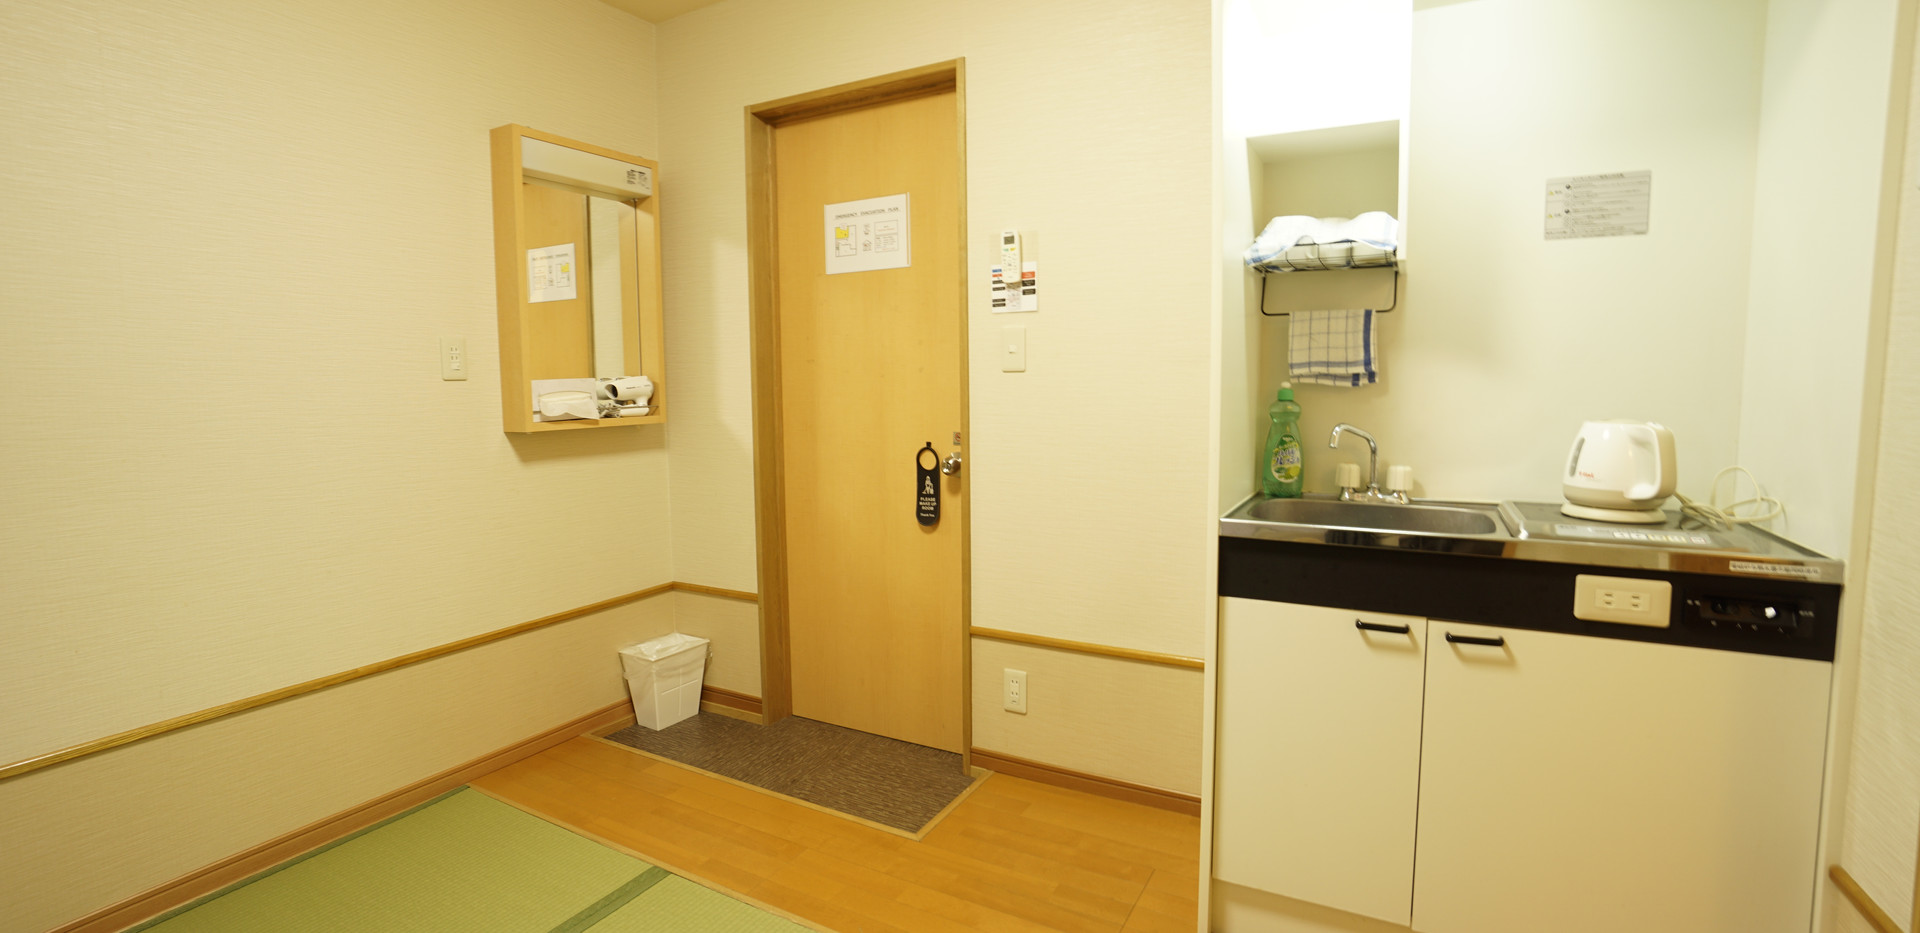 JAPANESE ROOM with BATHROOM / TOILET